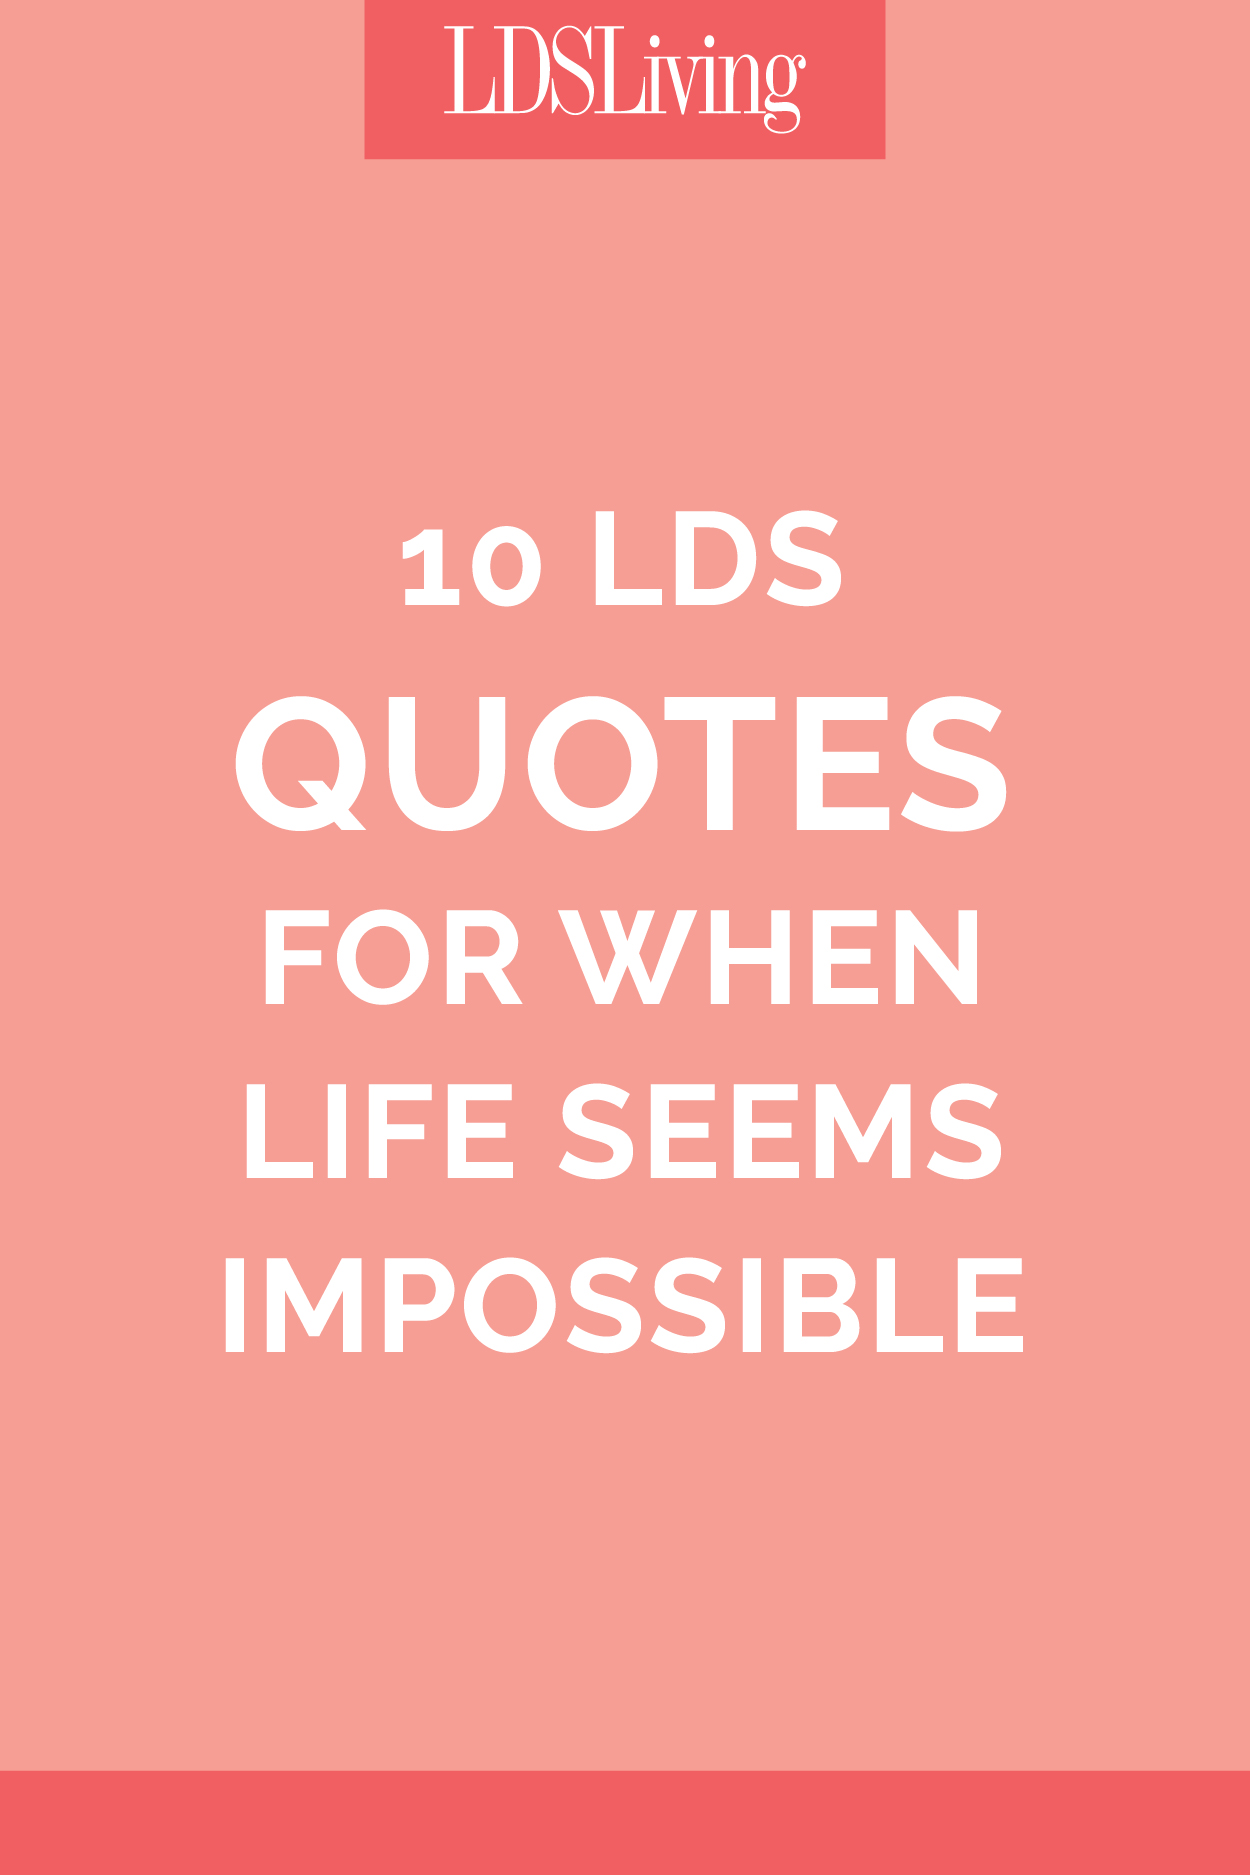 Living Life Quotes 10 Lds Quotes For When Life Seems Impossible  Lds Living